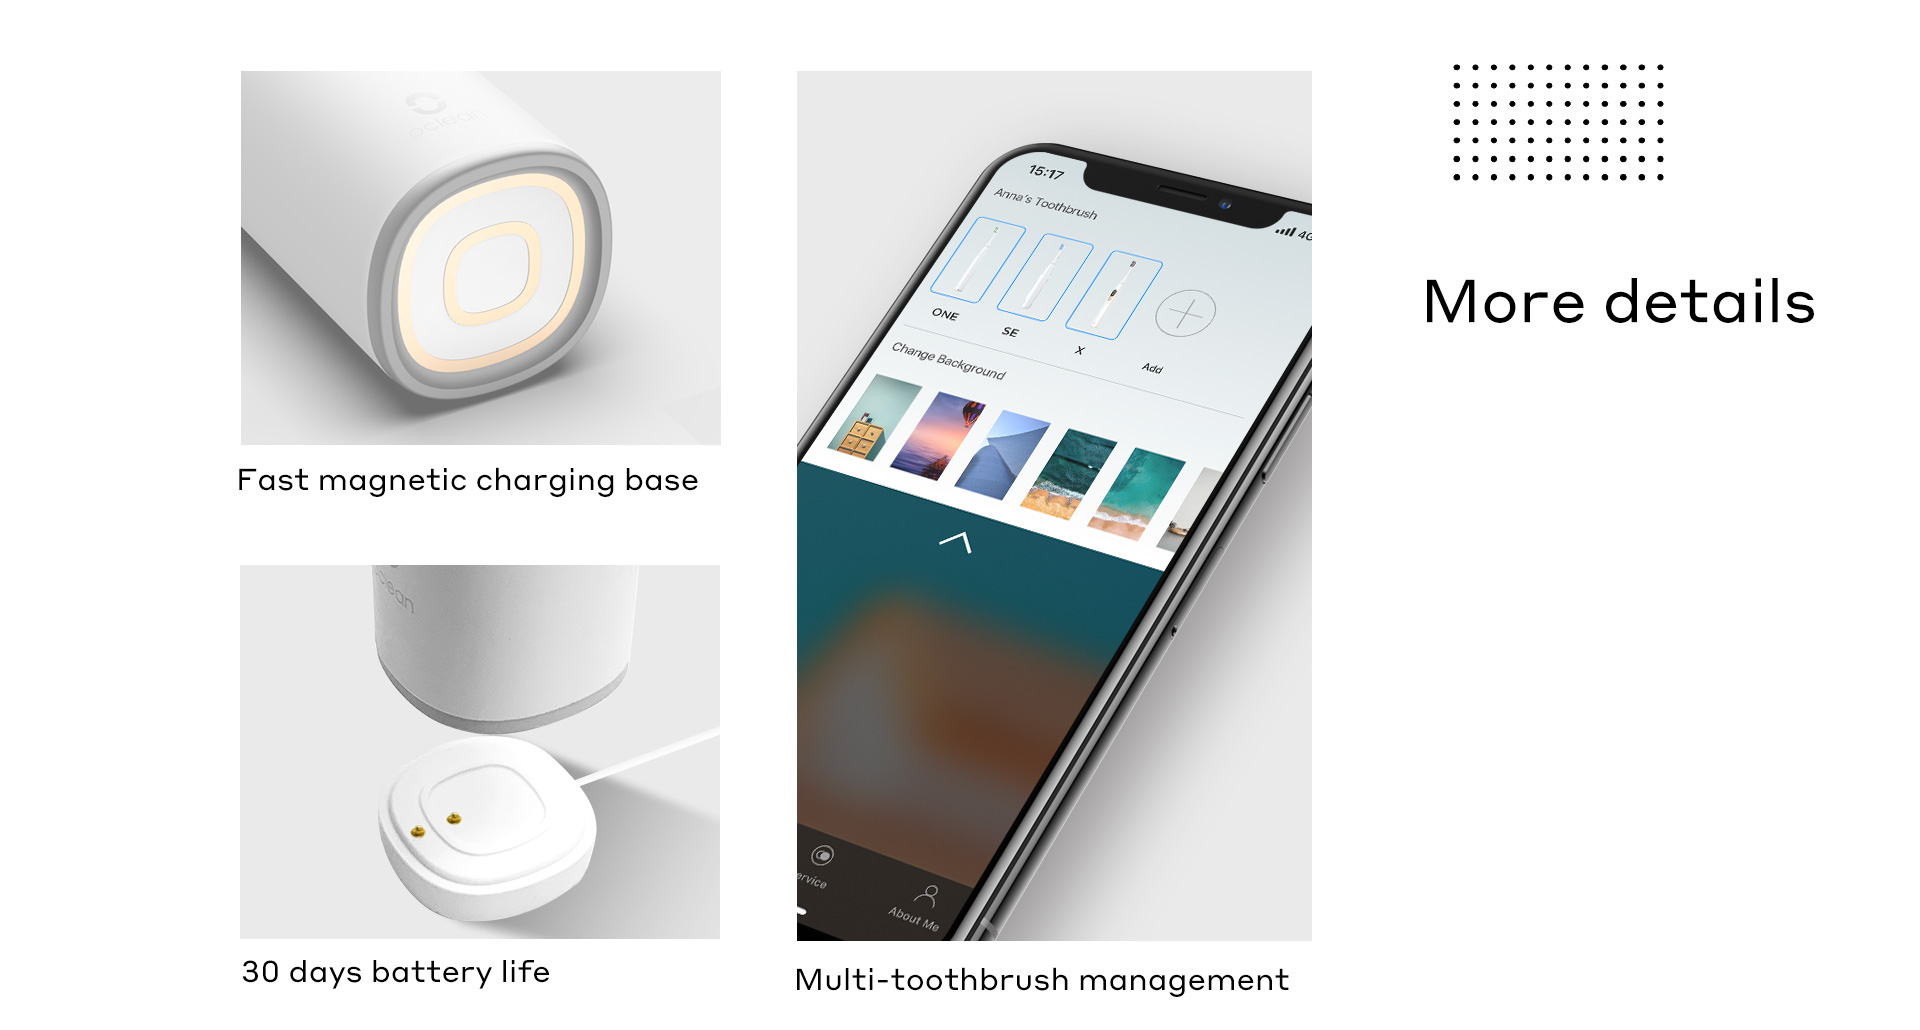 fast magnetic charging base 30 days battery life